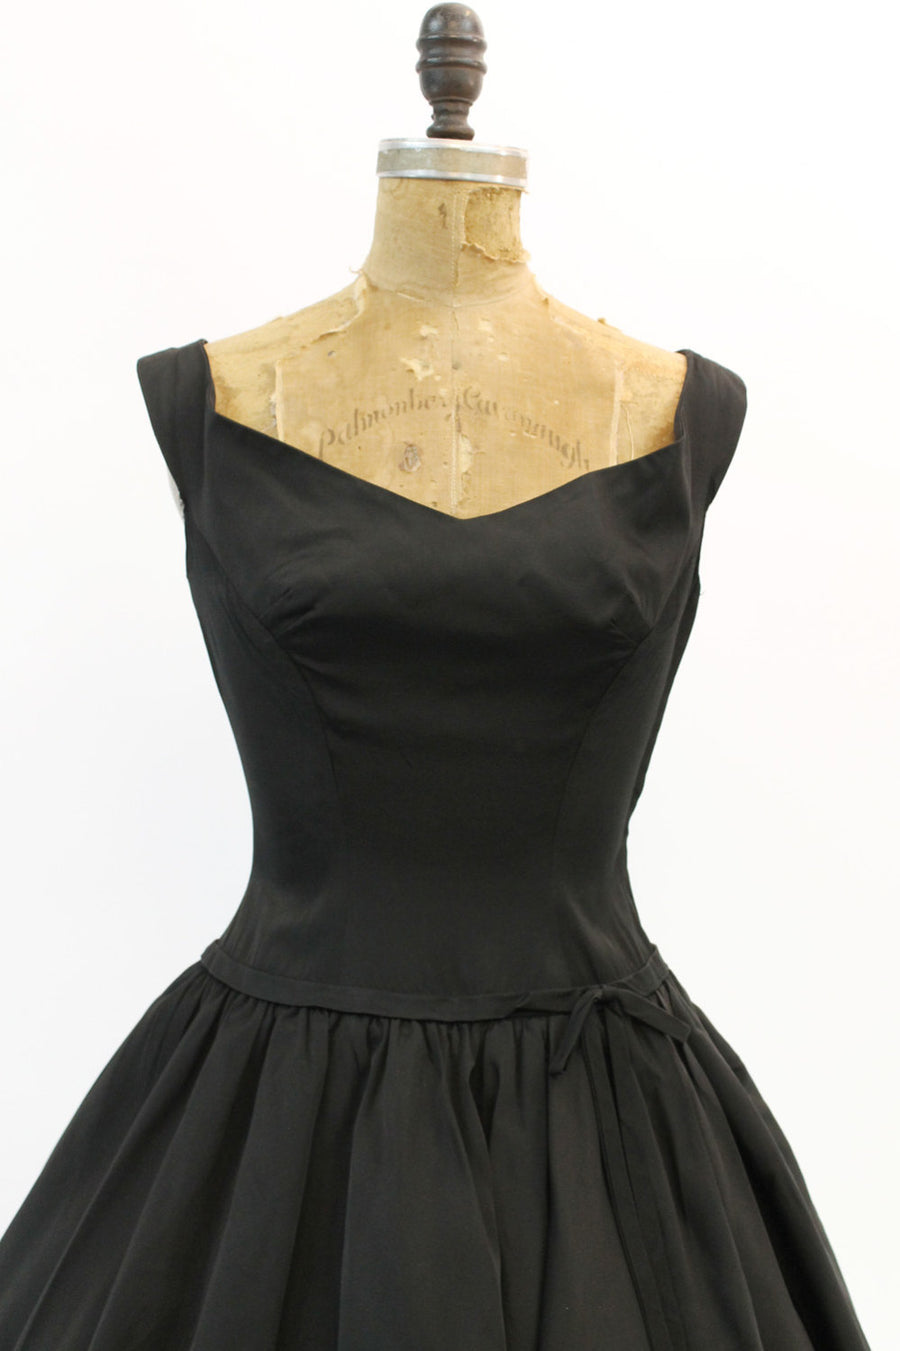 1950s black taffeta double tiered full skirt dress | xs |  vintage party dress